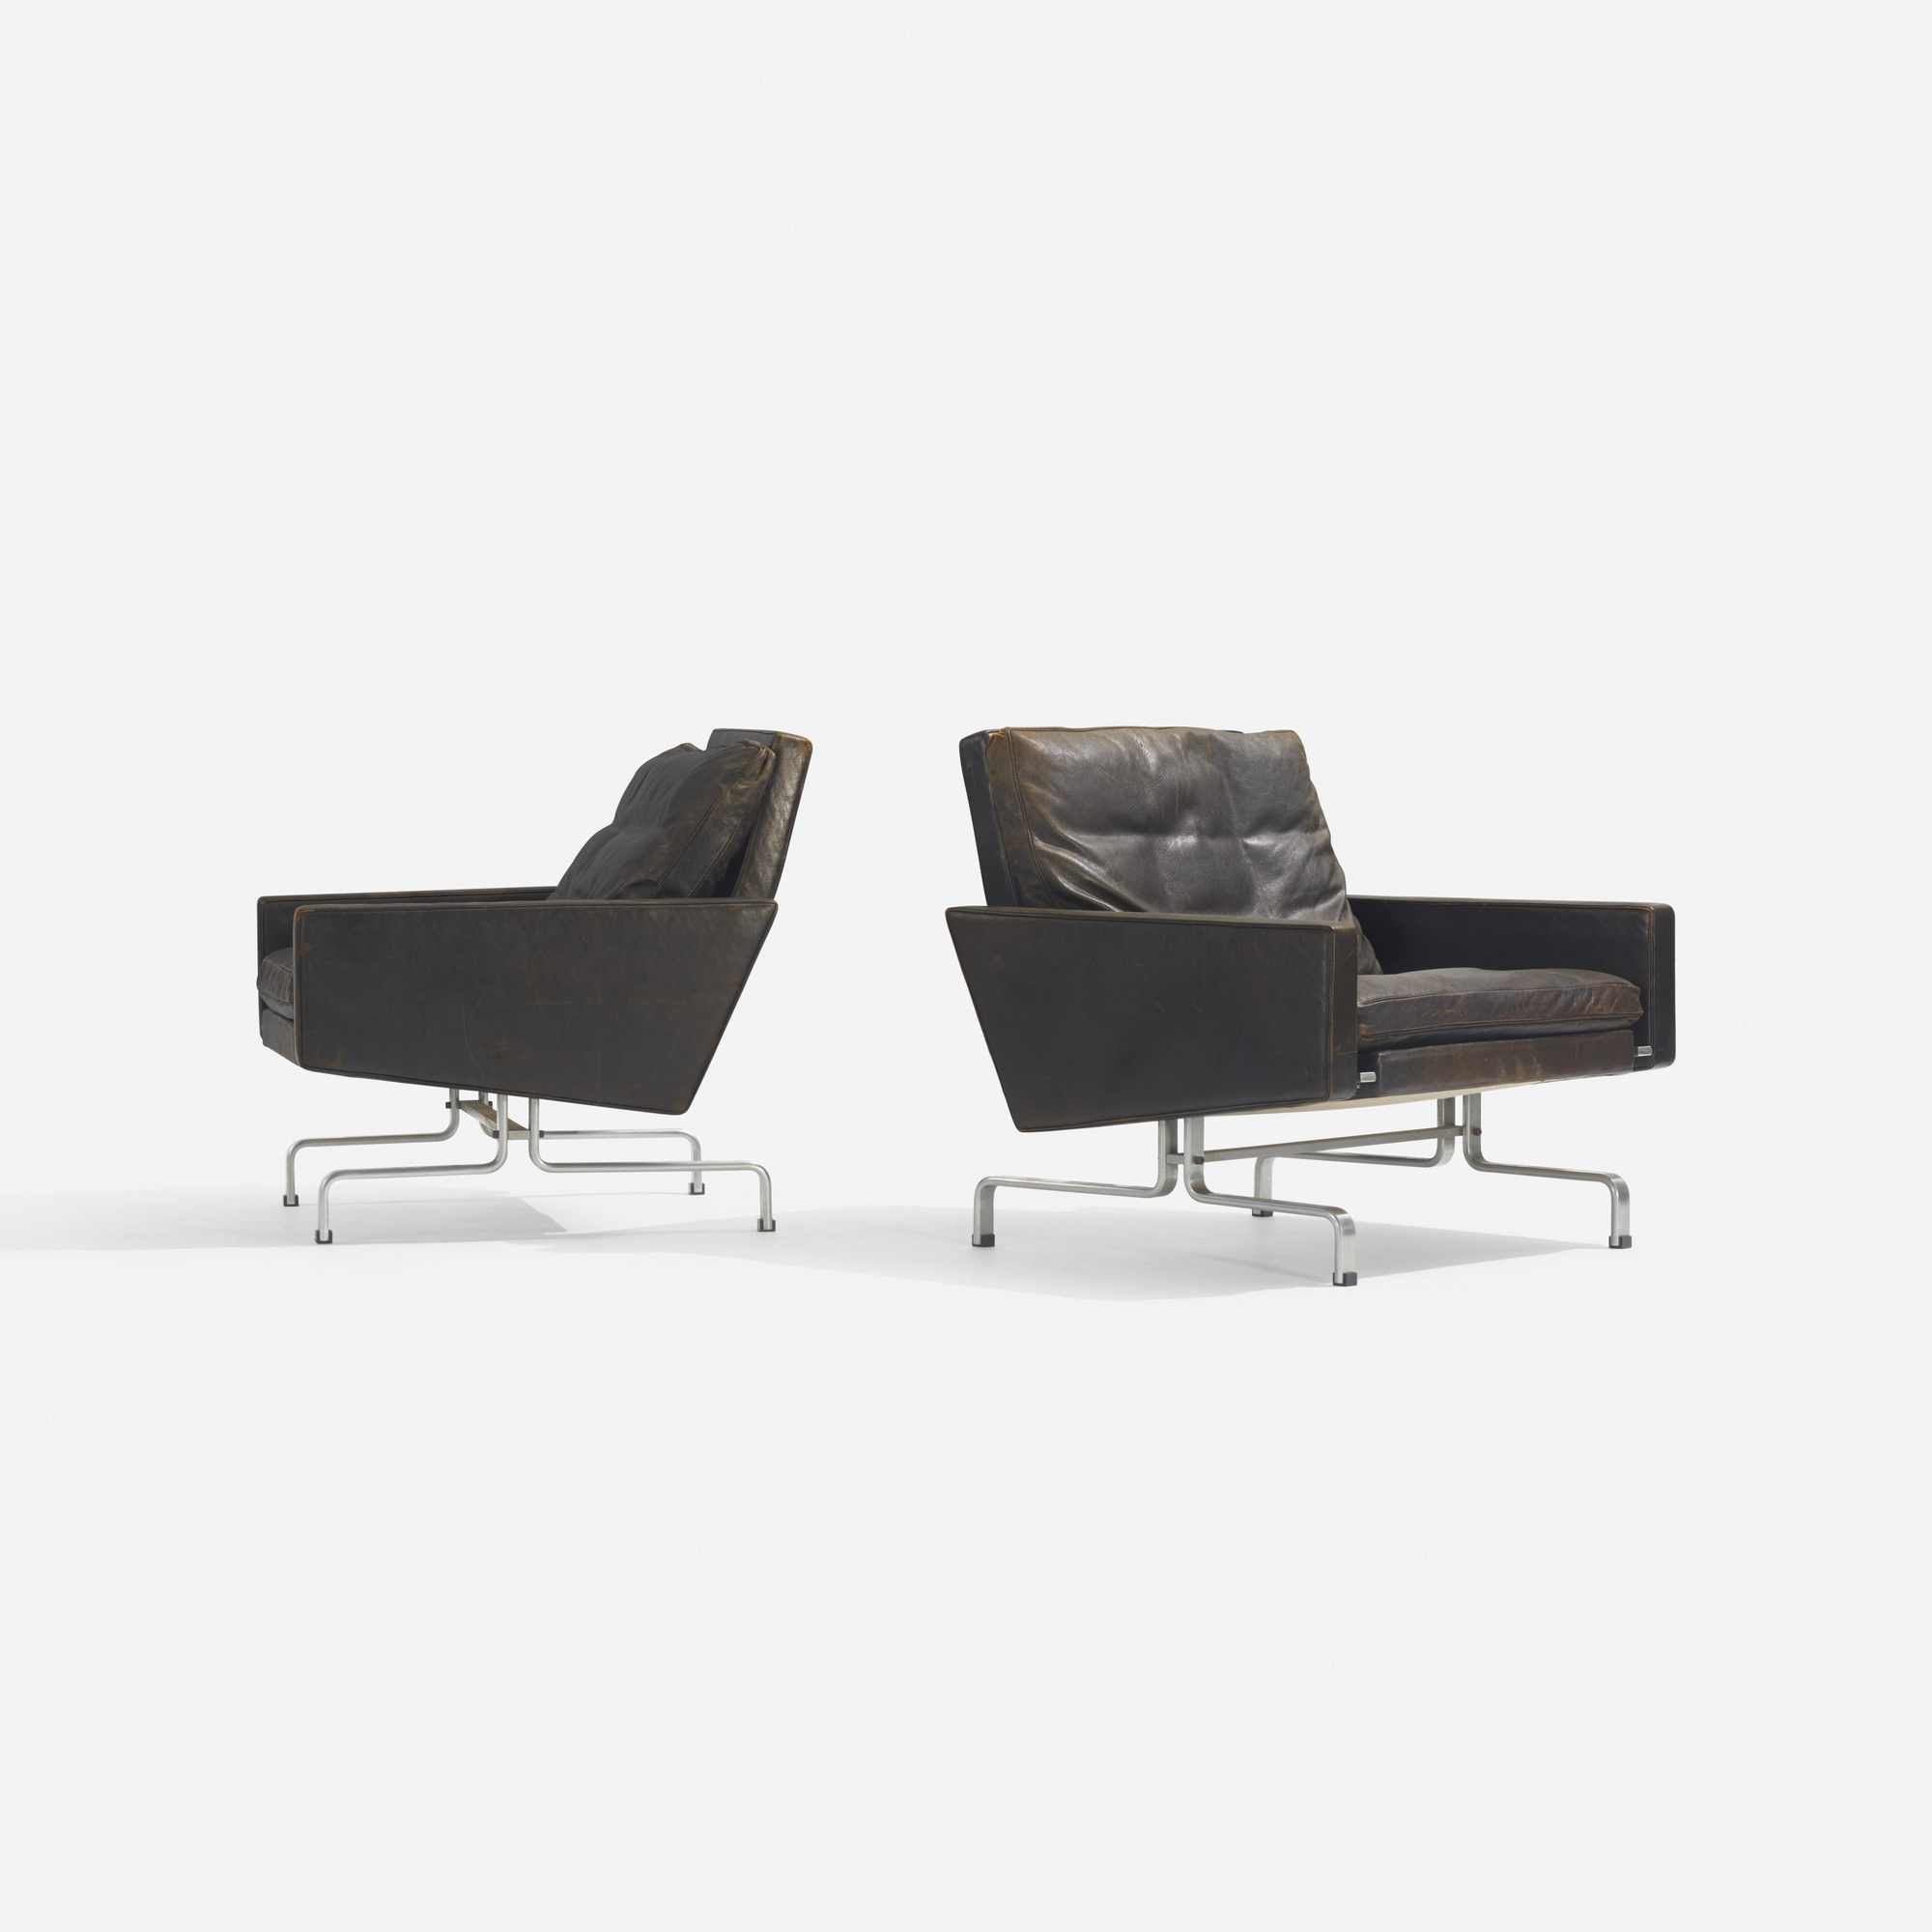 214: Poul Kjaerholm / PK 31/1 lounge chairs, pair (2 of 2)